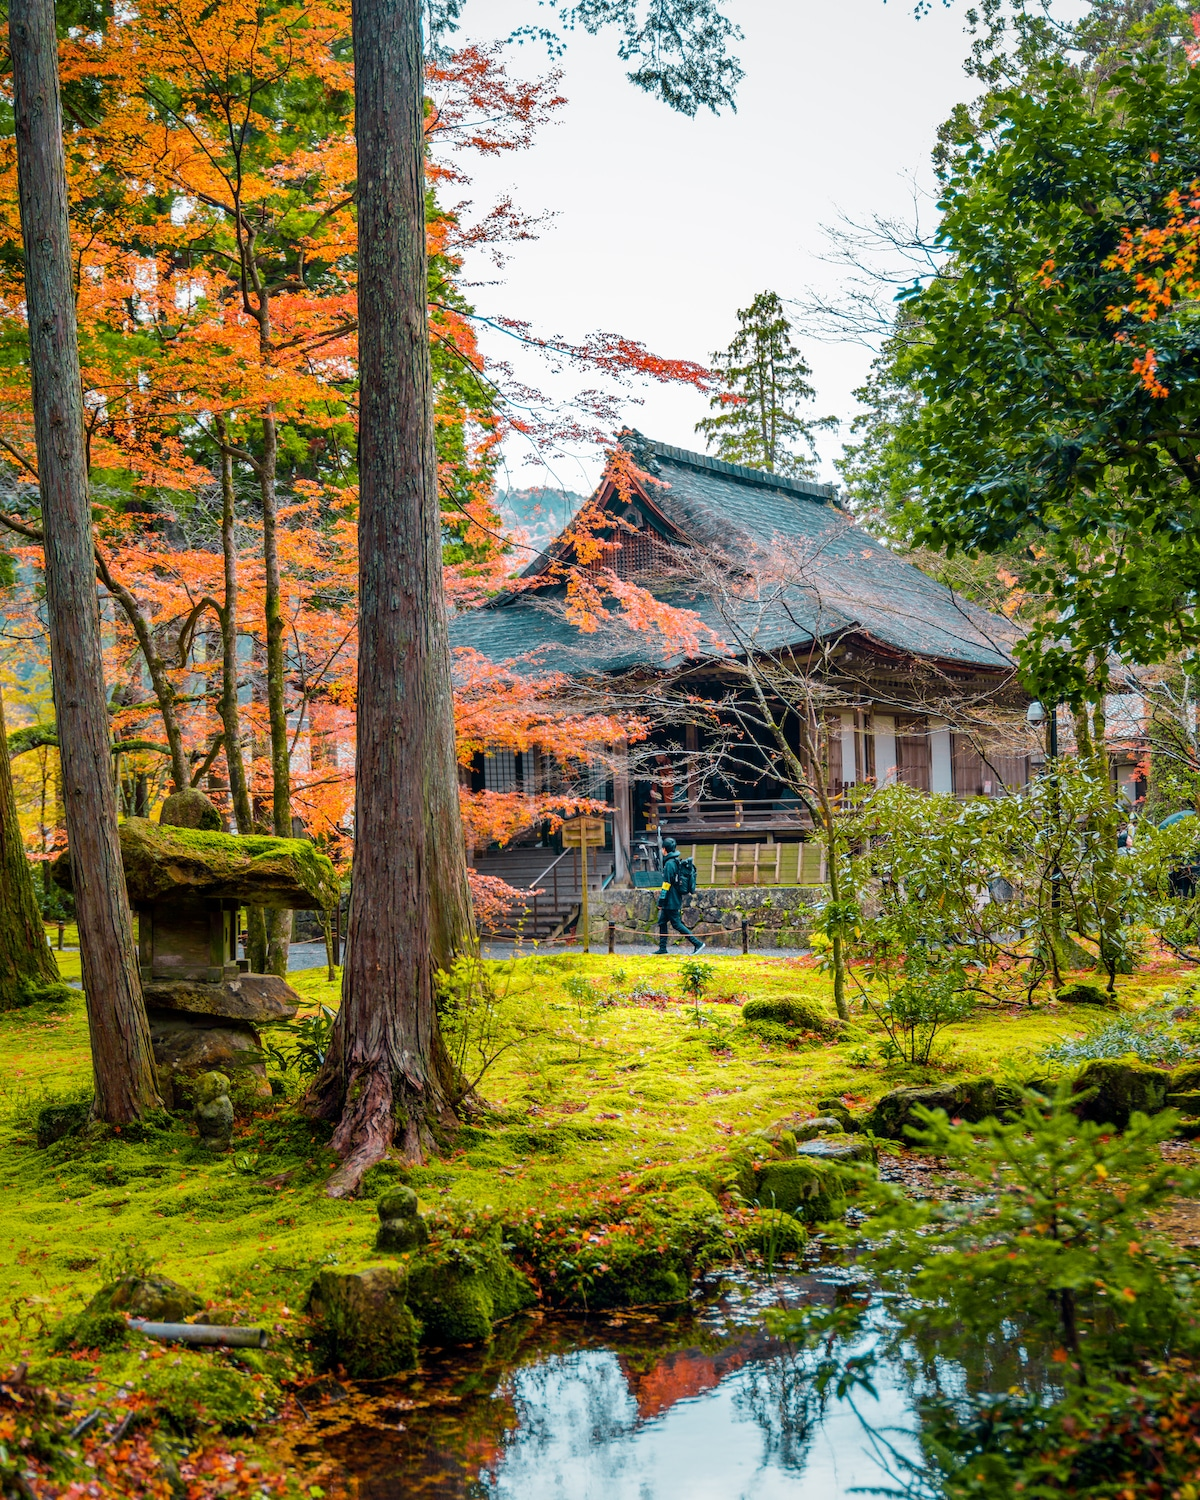 Explore-Japan-Lightroom-Contest-13-1.jpg